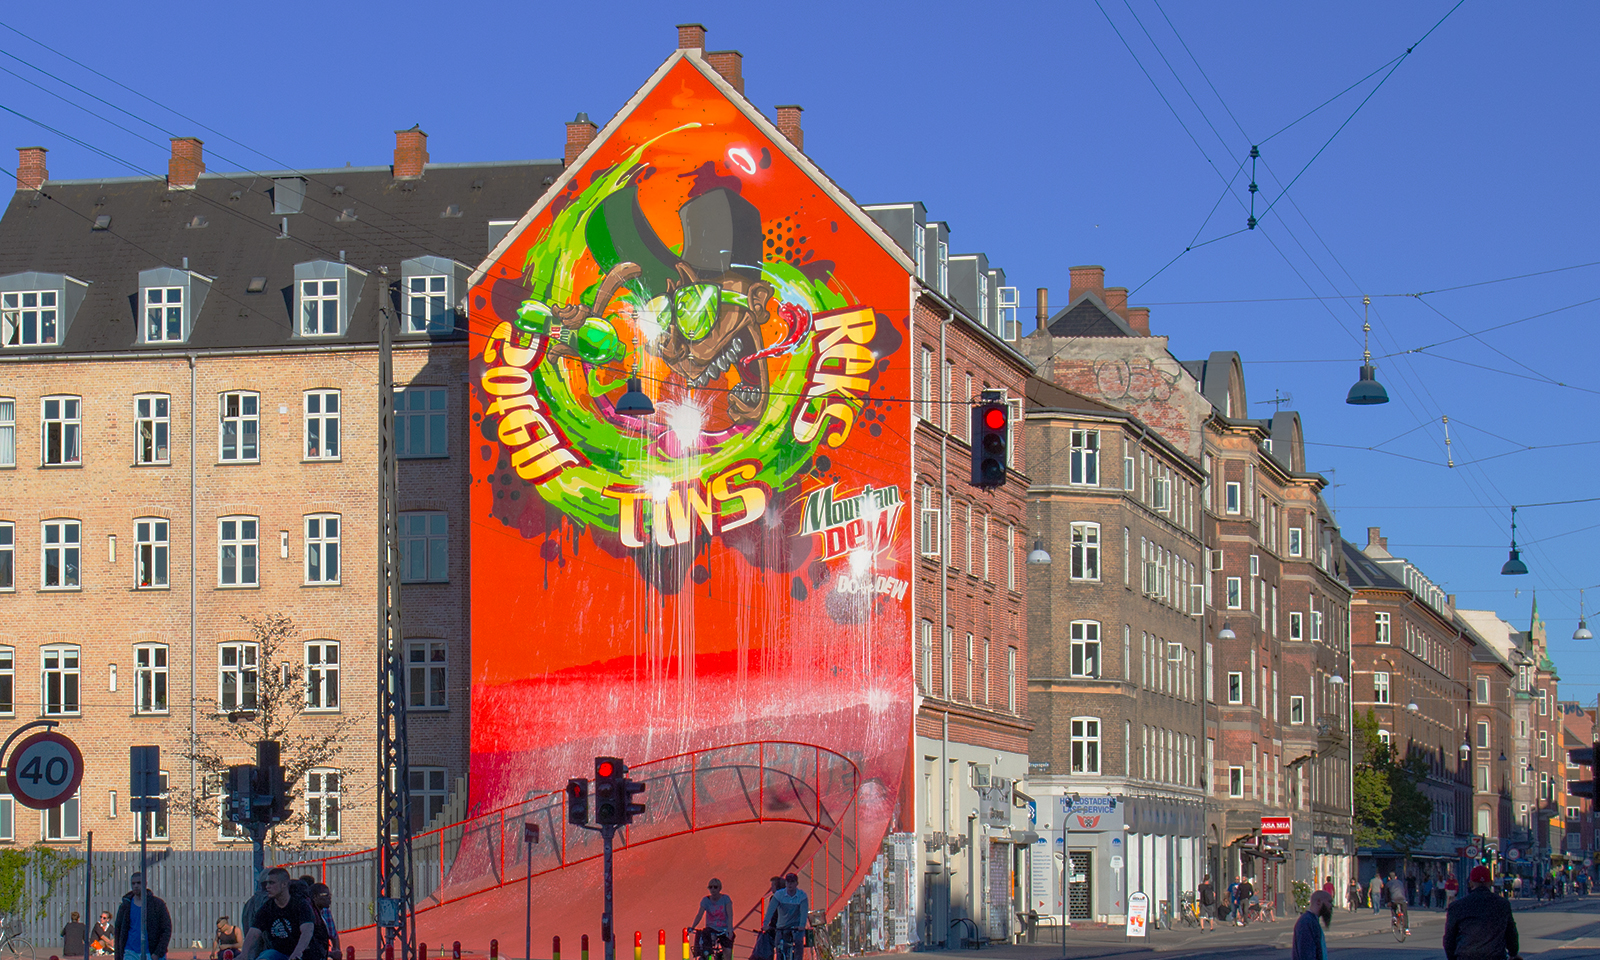 copenhagen-mountain-dew-advertisement